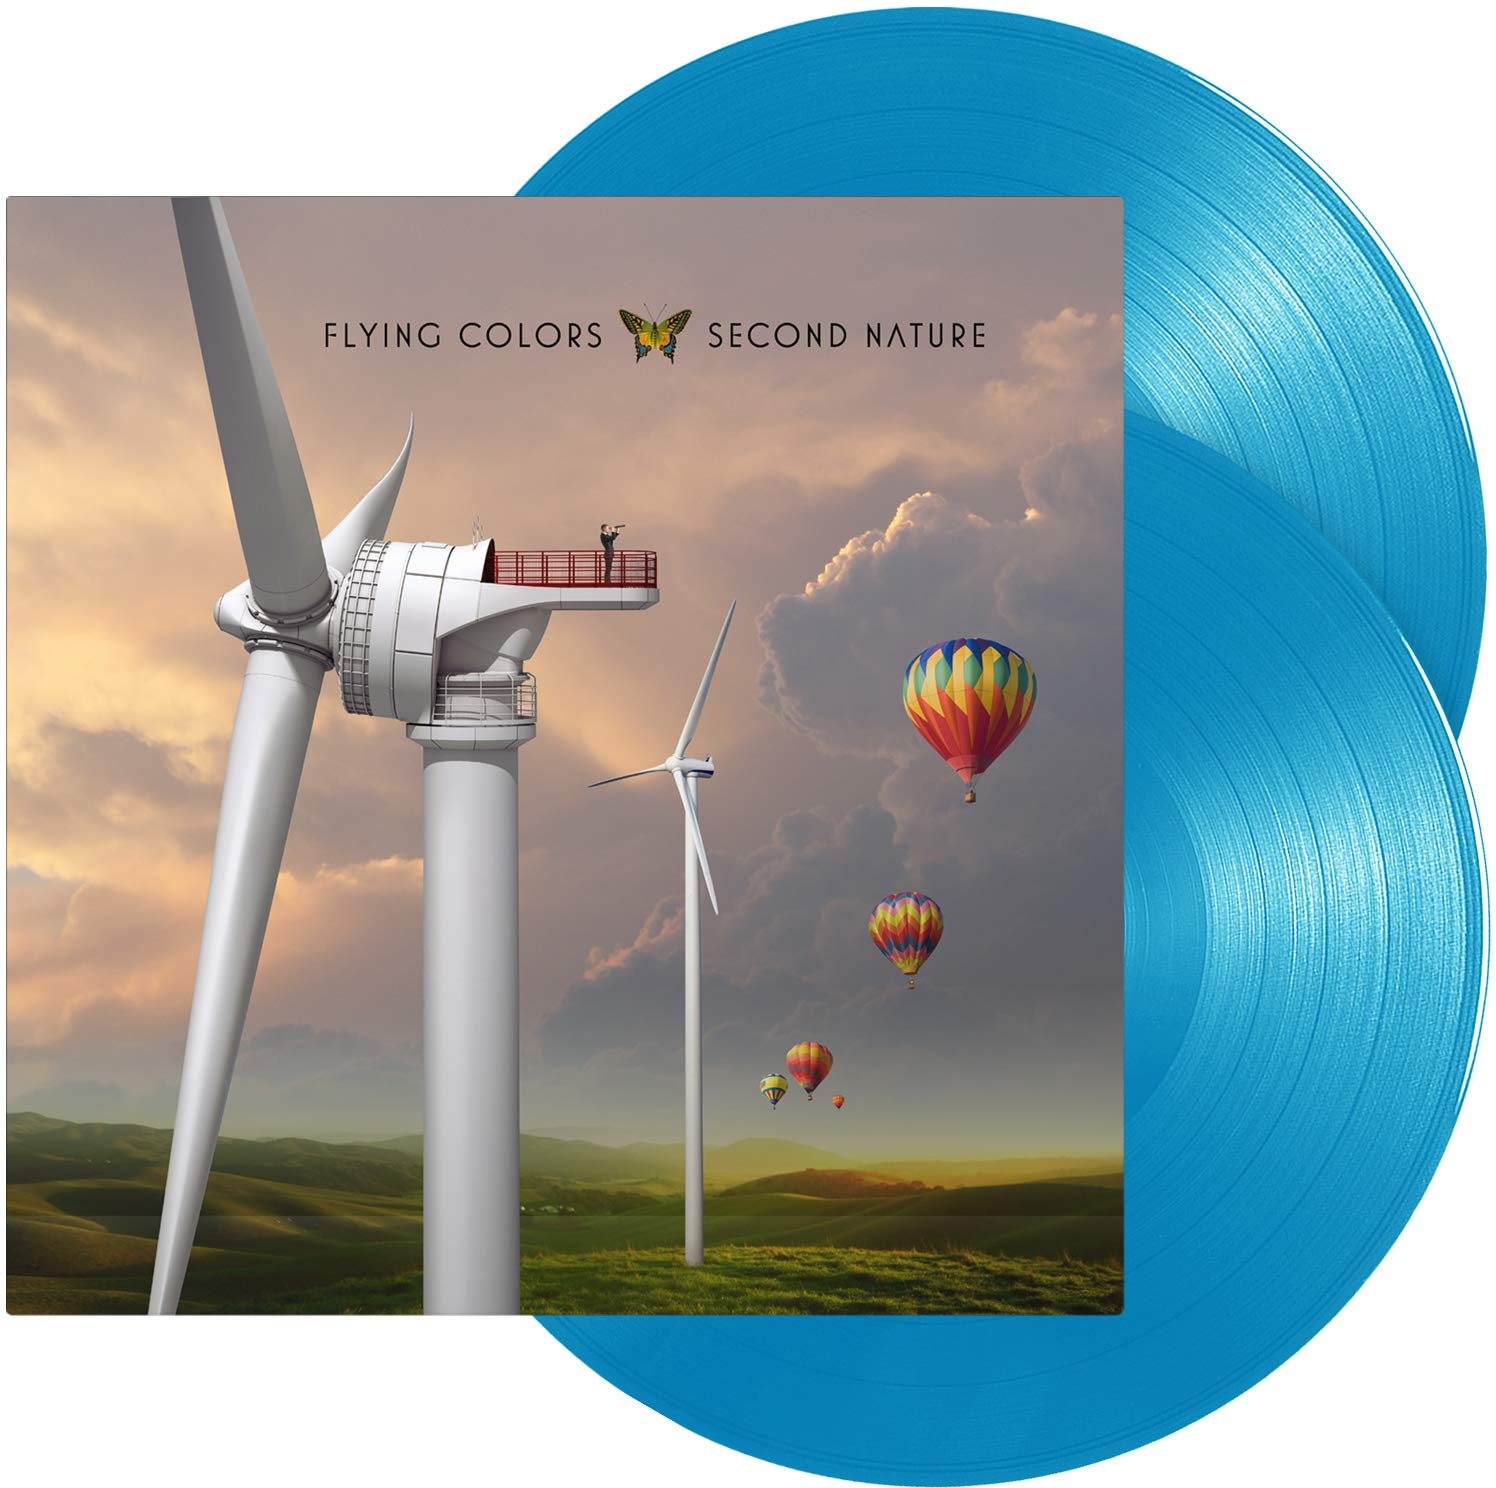 Second Nature (Light Blue Vinyl)